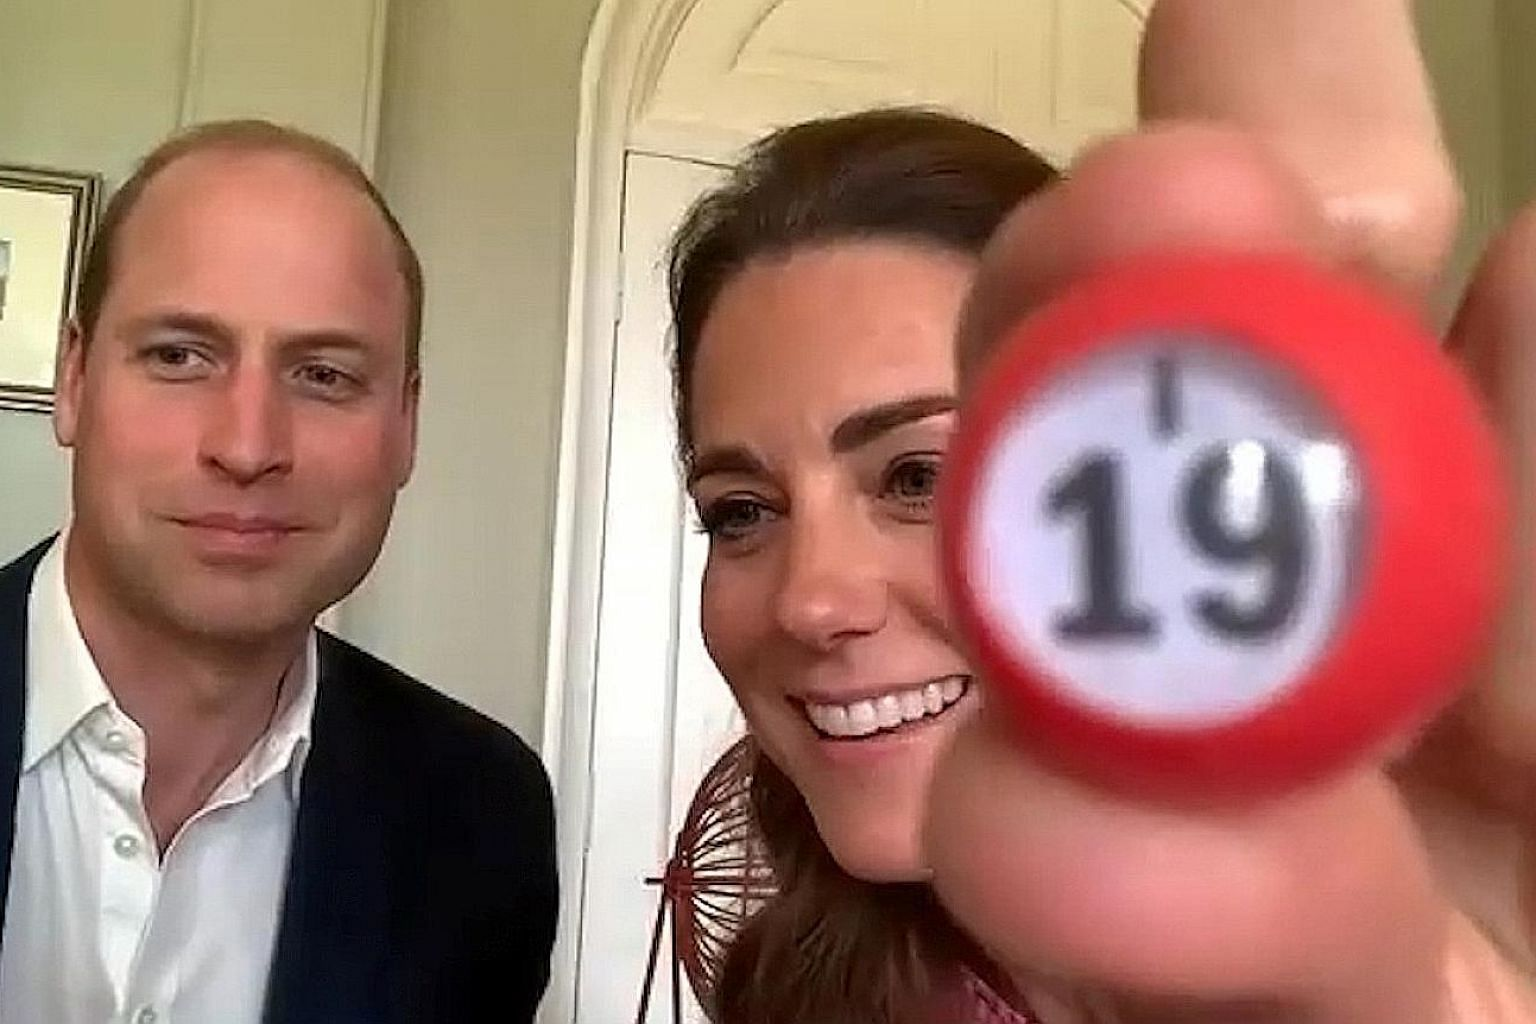 Prince William and Kate Middleton took turns to call out the numbers generated by their own bingo spinner as they joined in the game with the residents of Shire Hall Care Home.